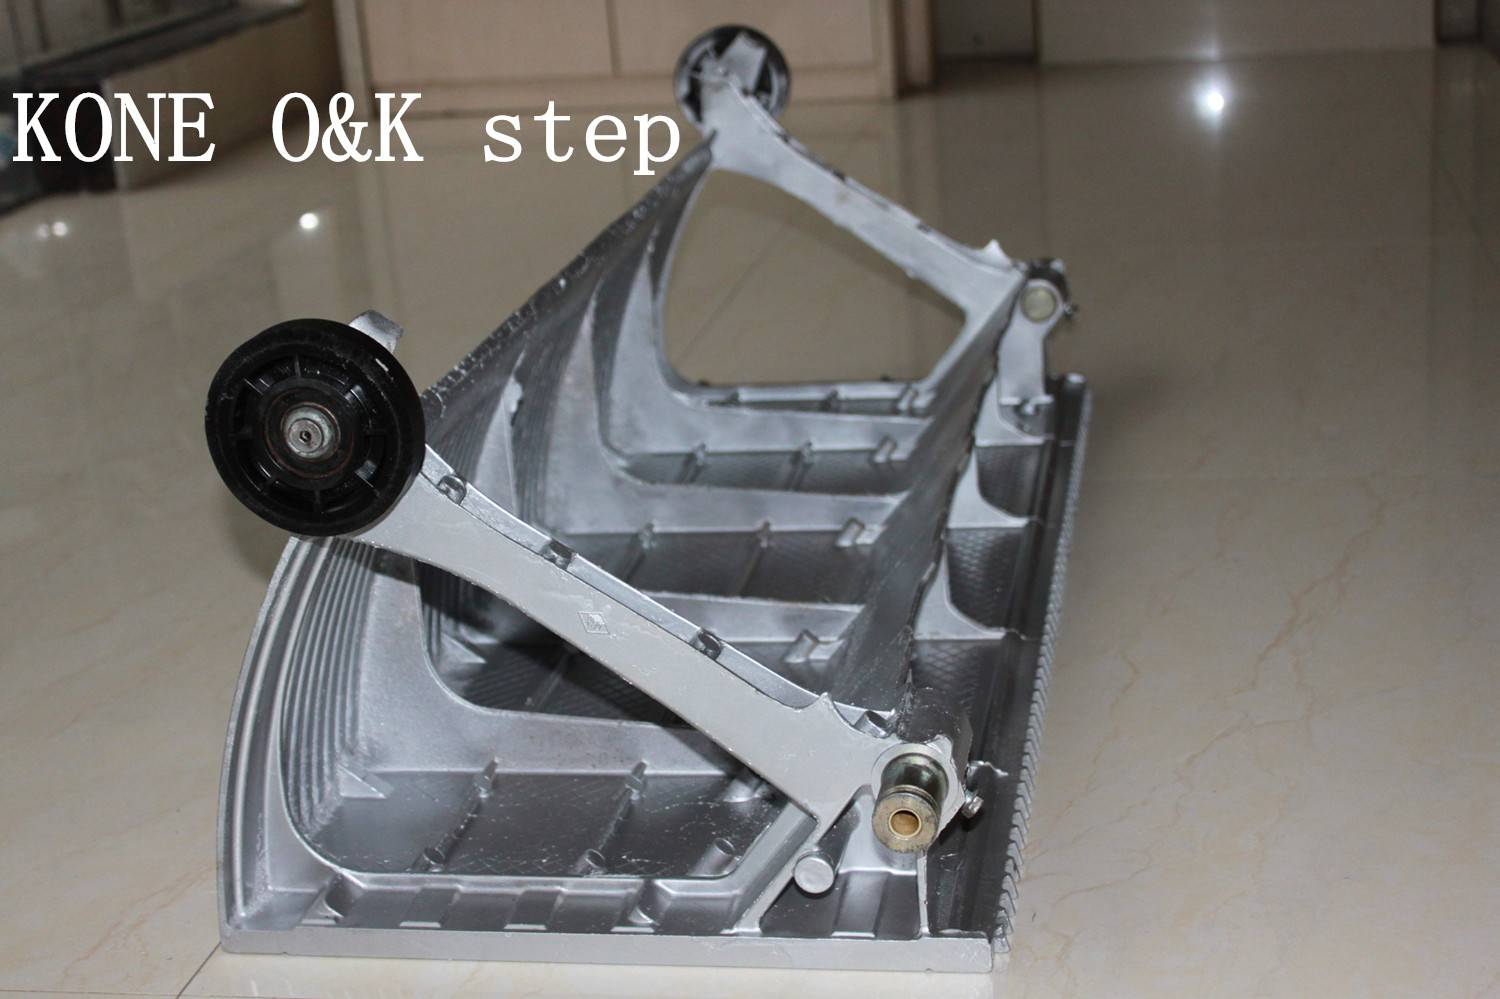 KONE O&K escalator step